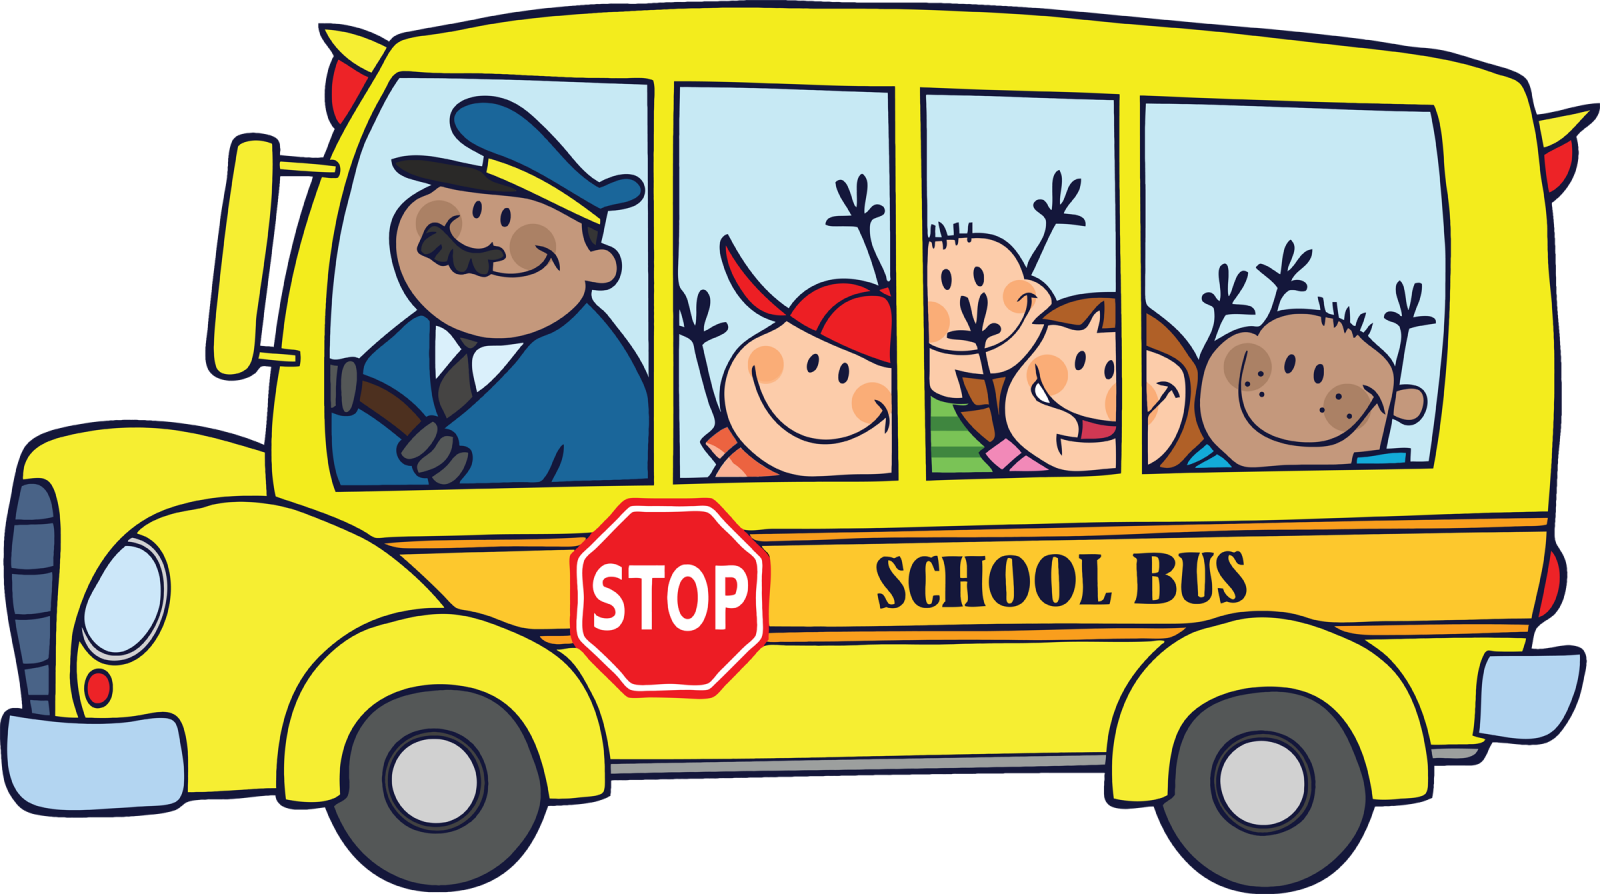 Kids riding school bus clipart.